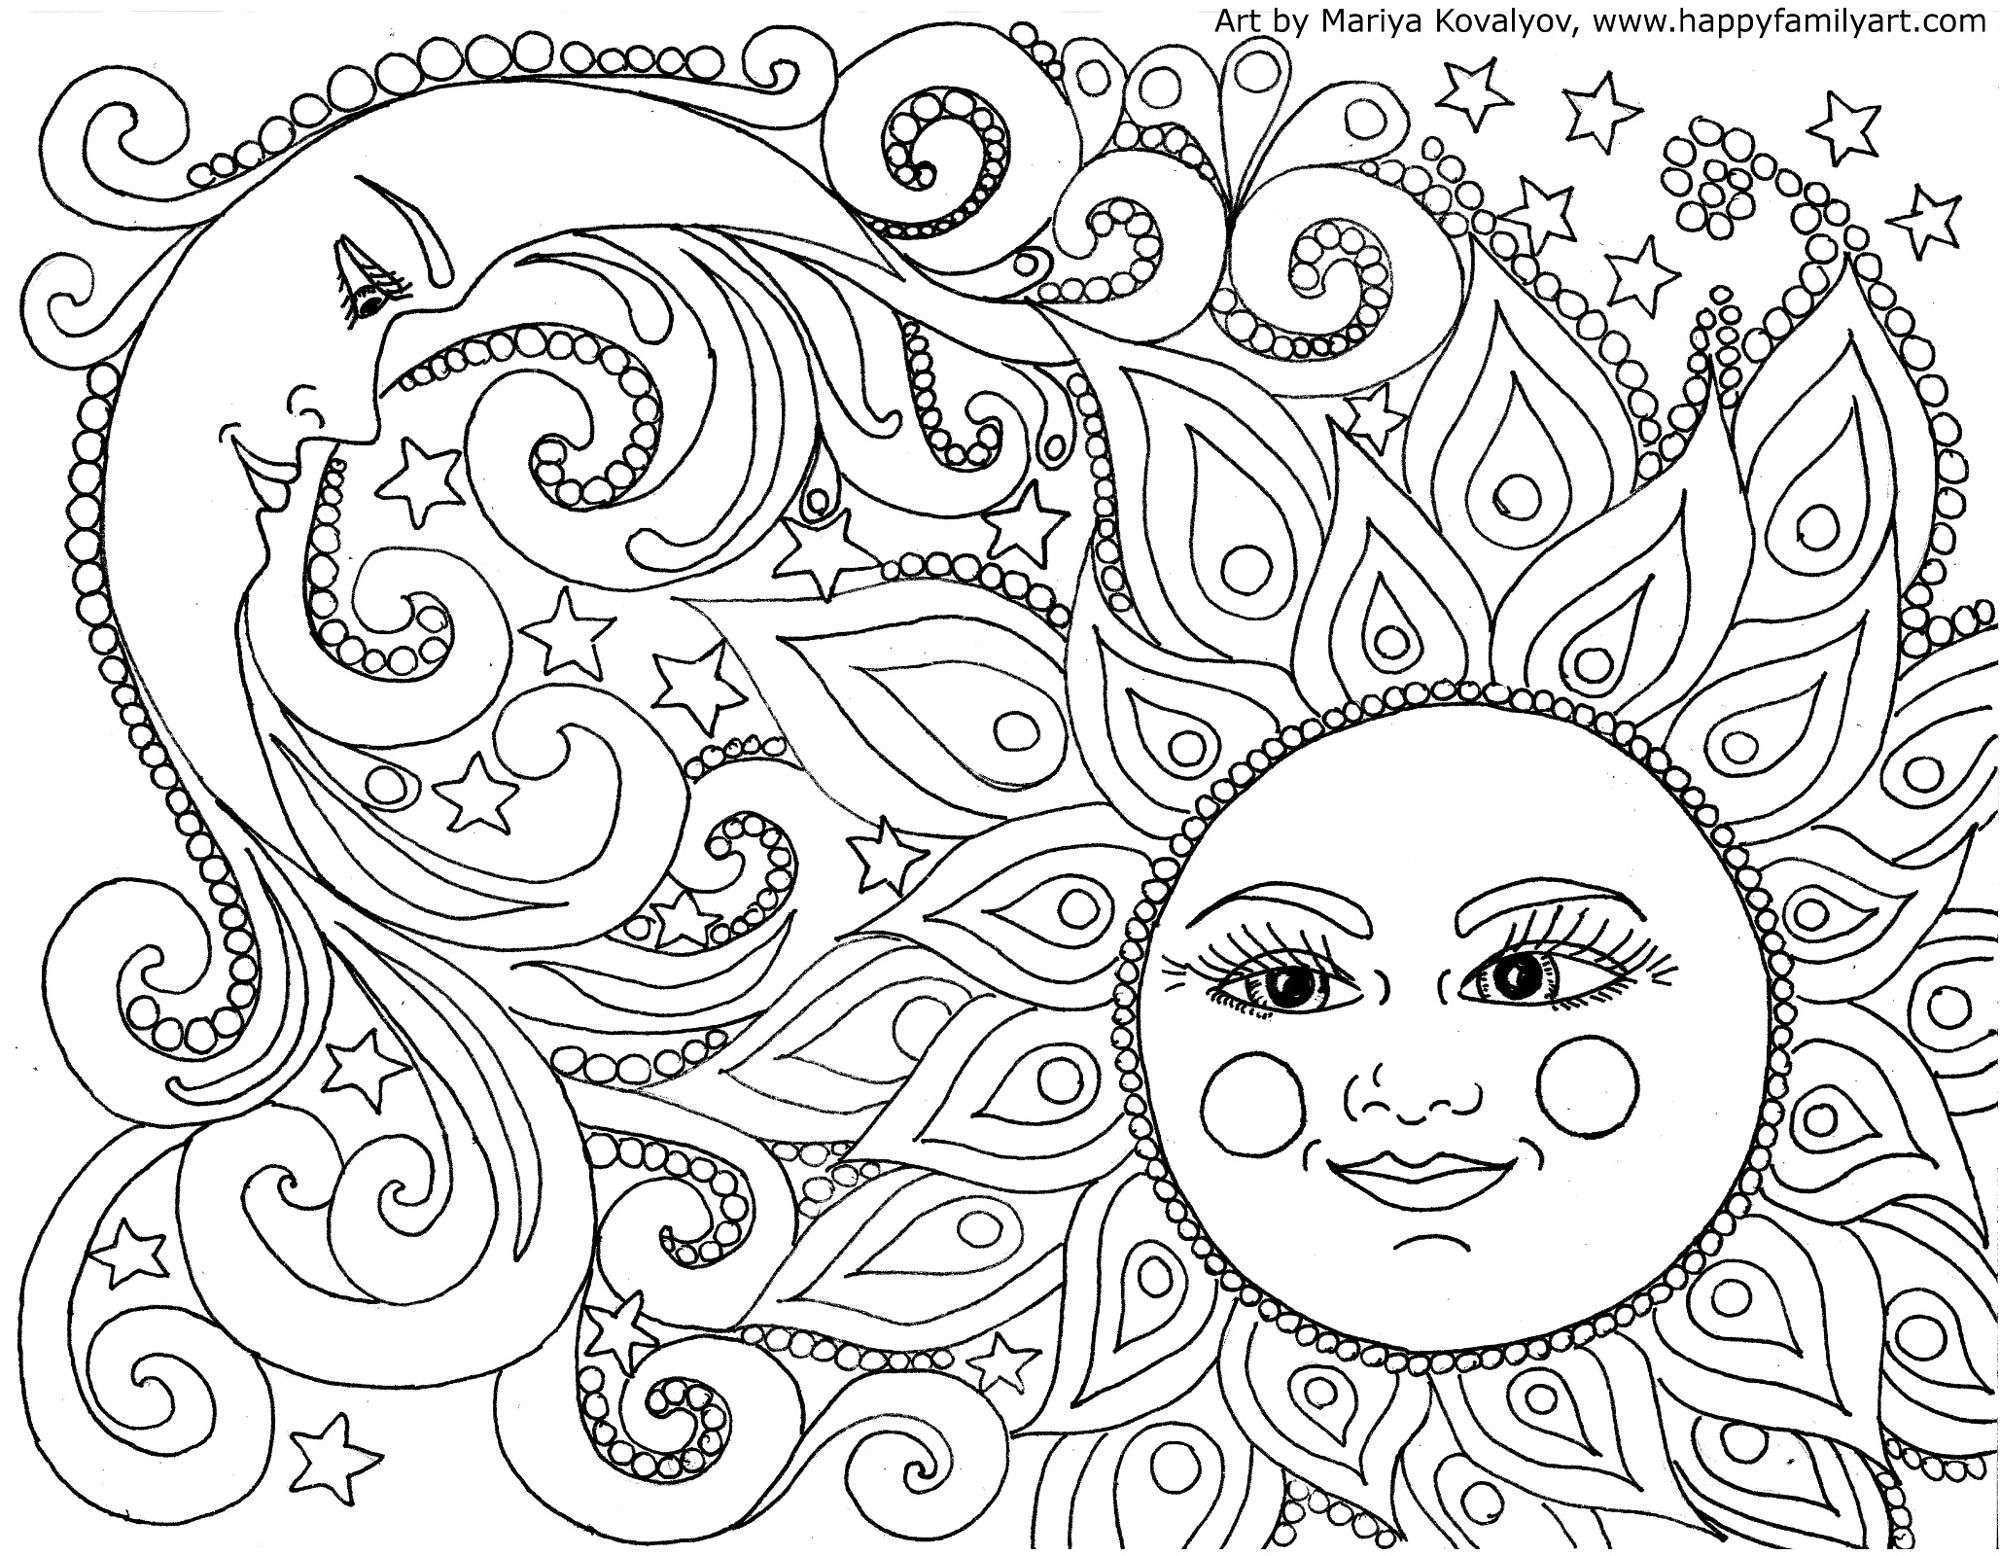 Word Search Coloring Pages To Print Word Search Coloring Pages To Print Lovely Popular Coloring Pages